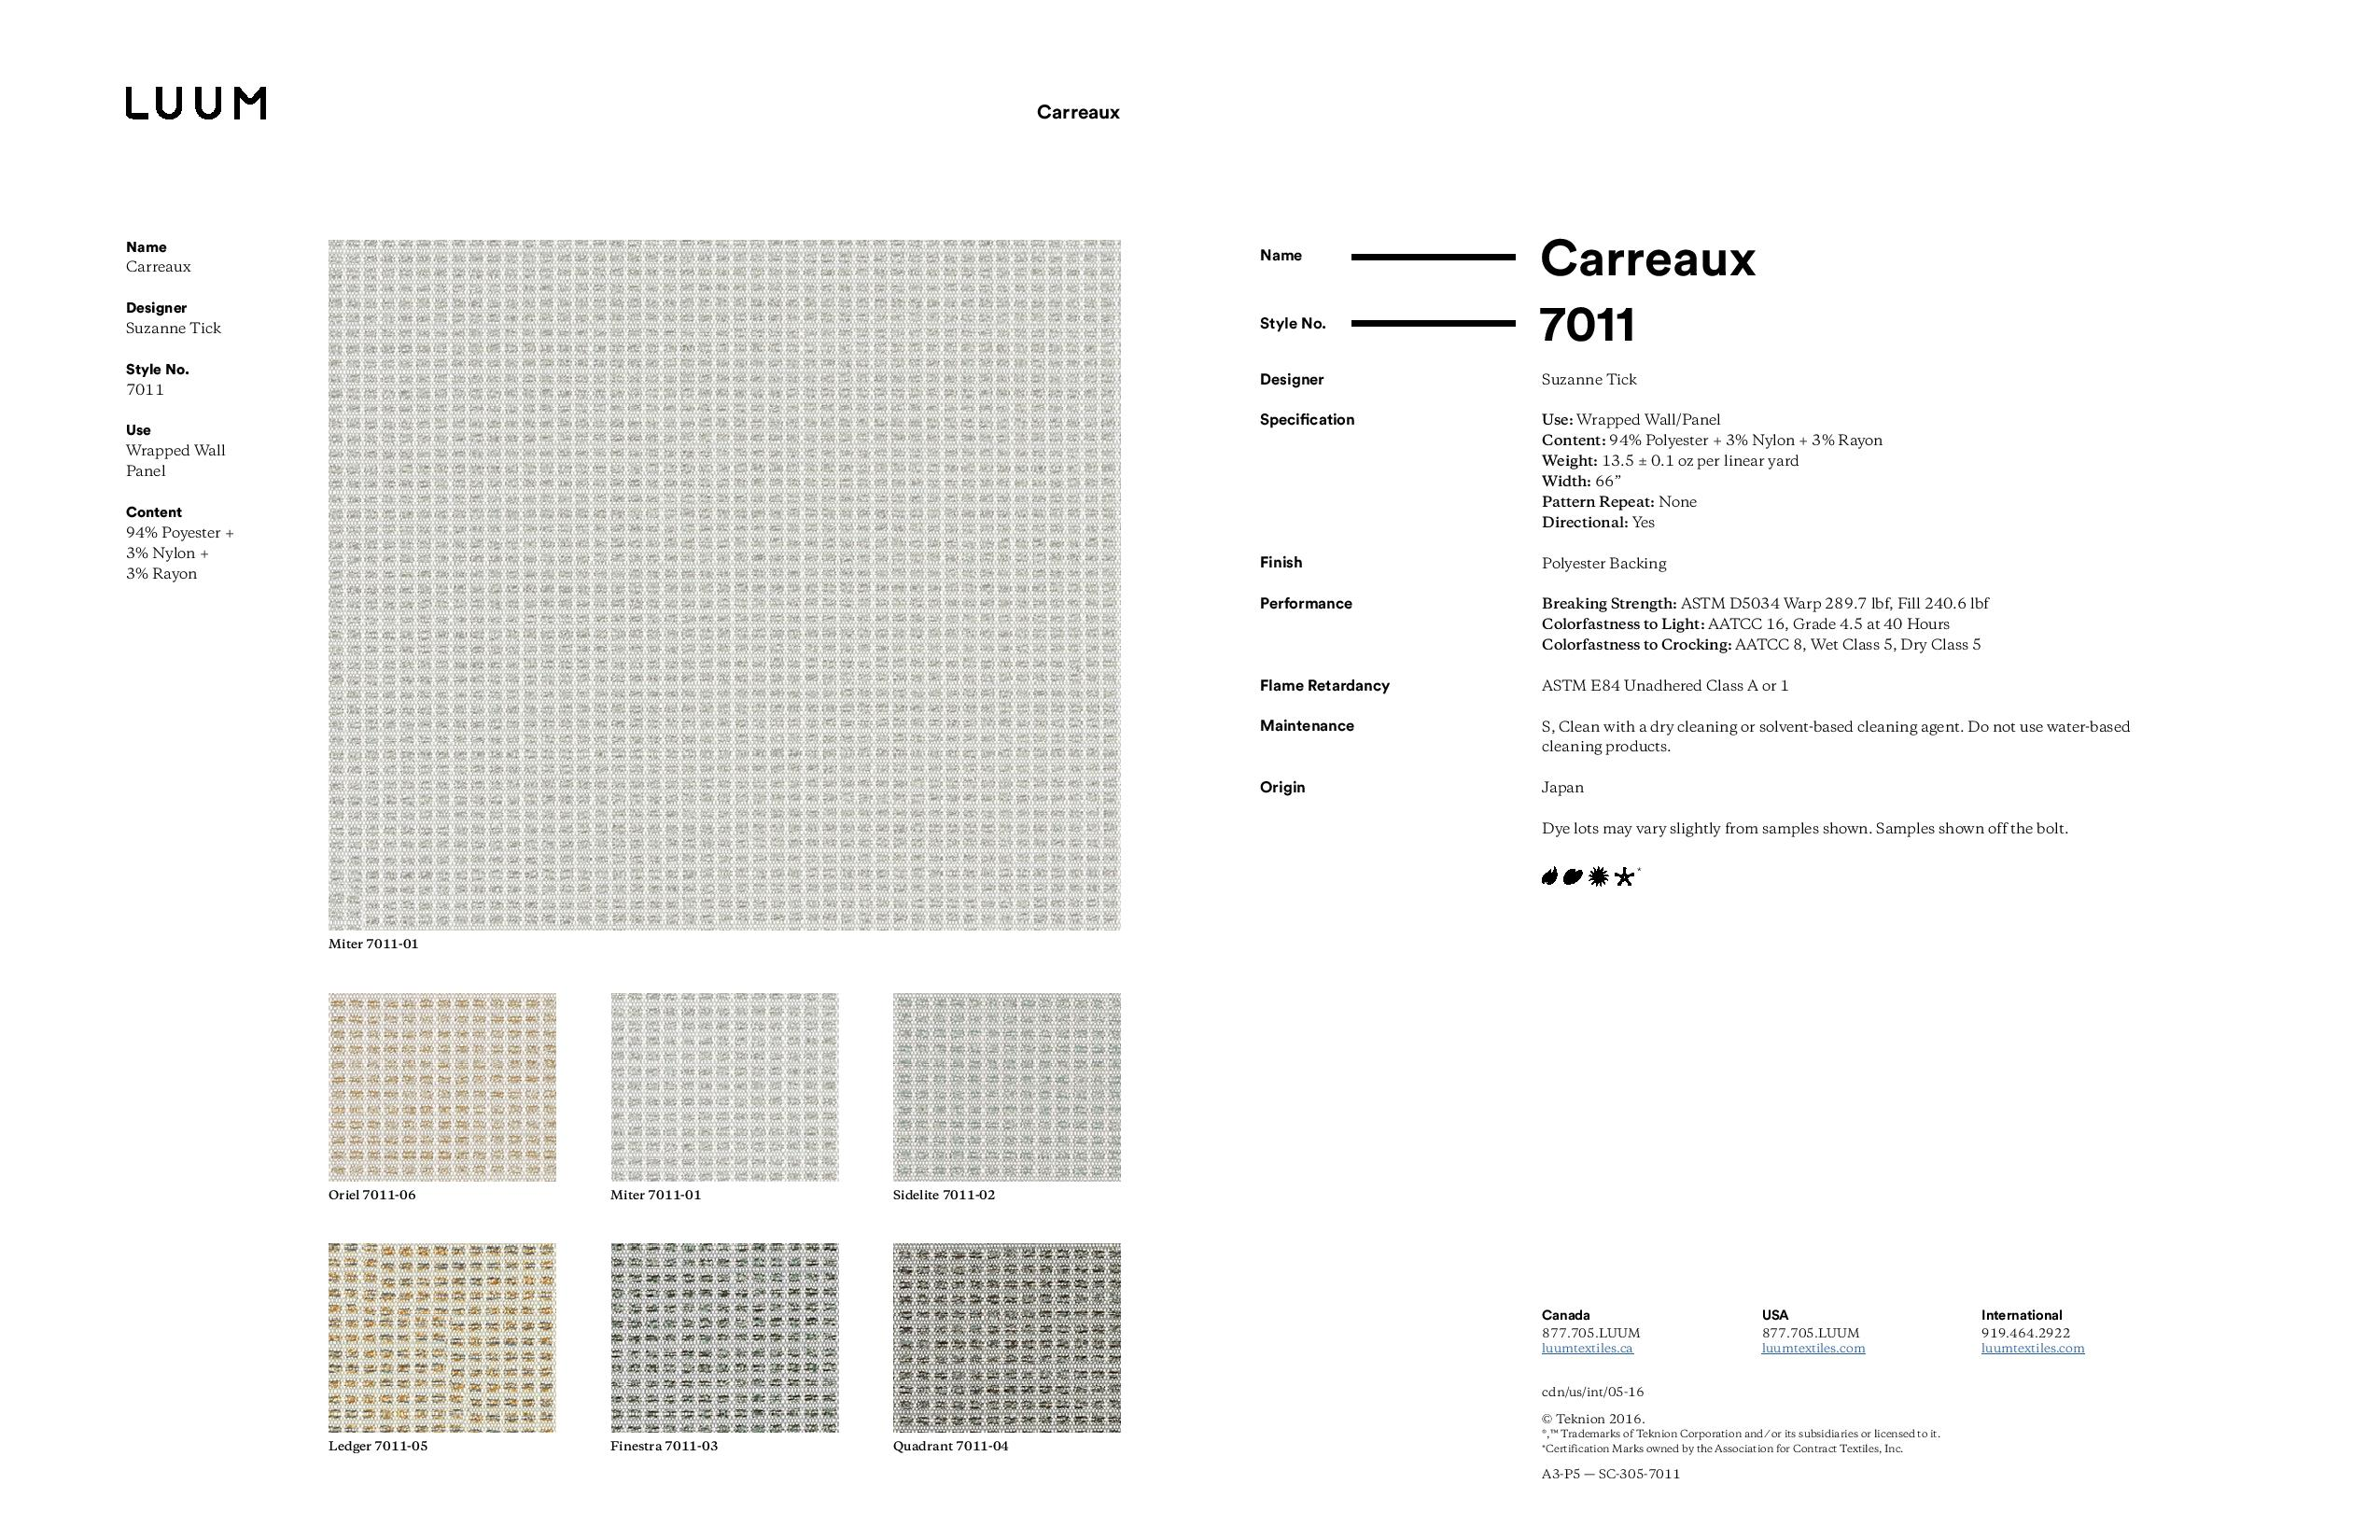 Carreaux - Quadrant - 7011 - 04 Sample Card